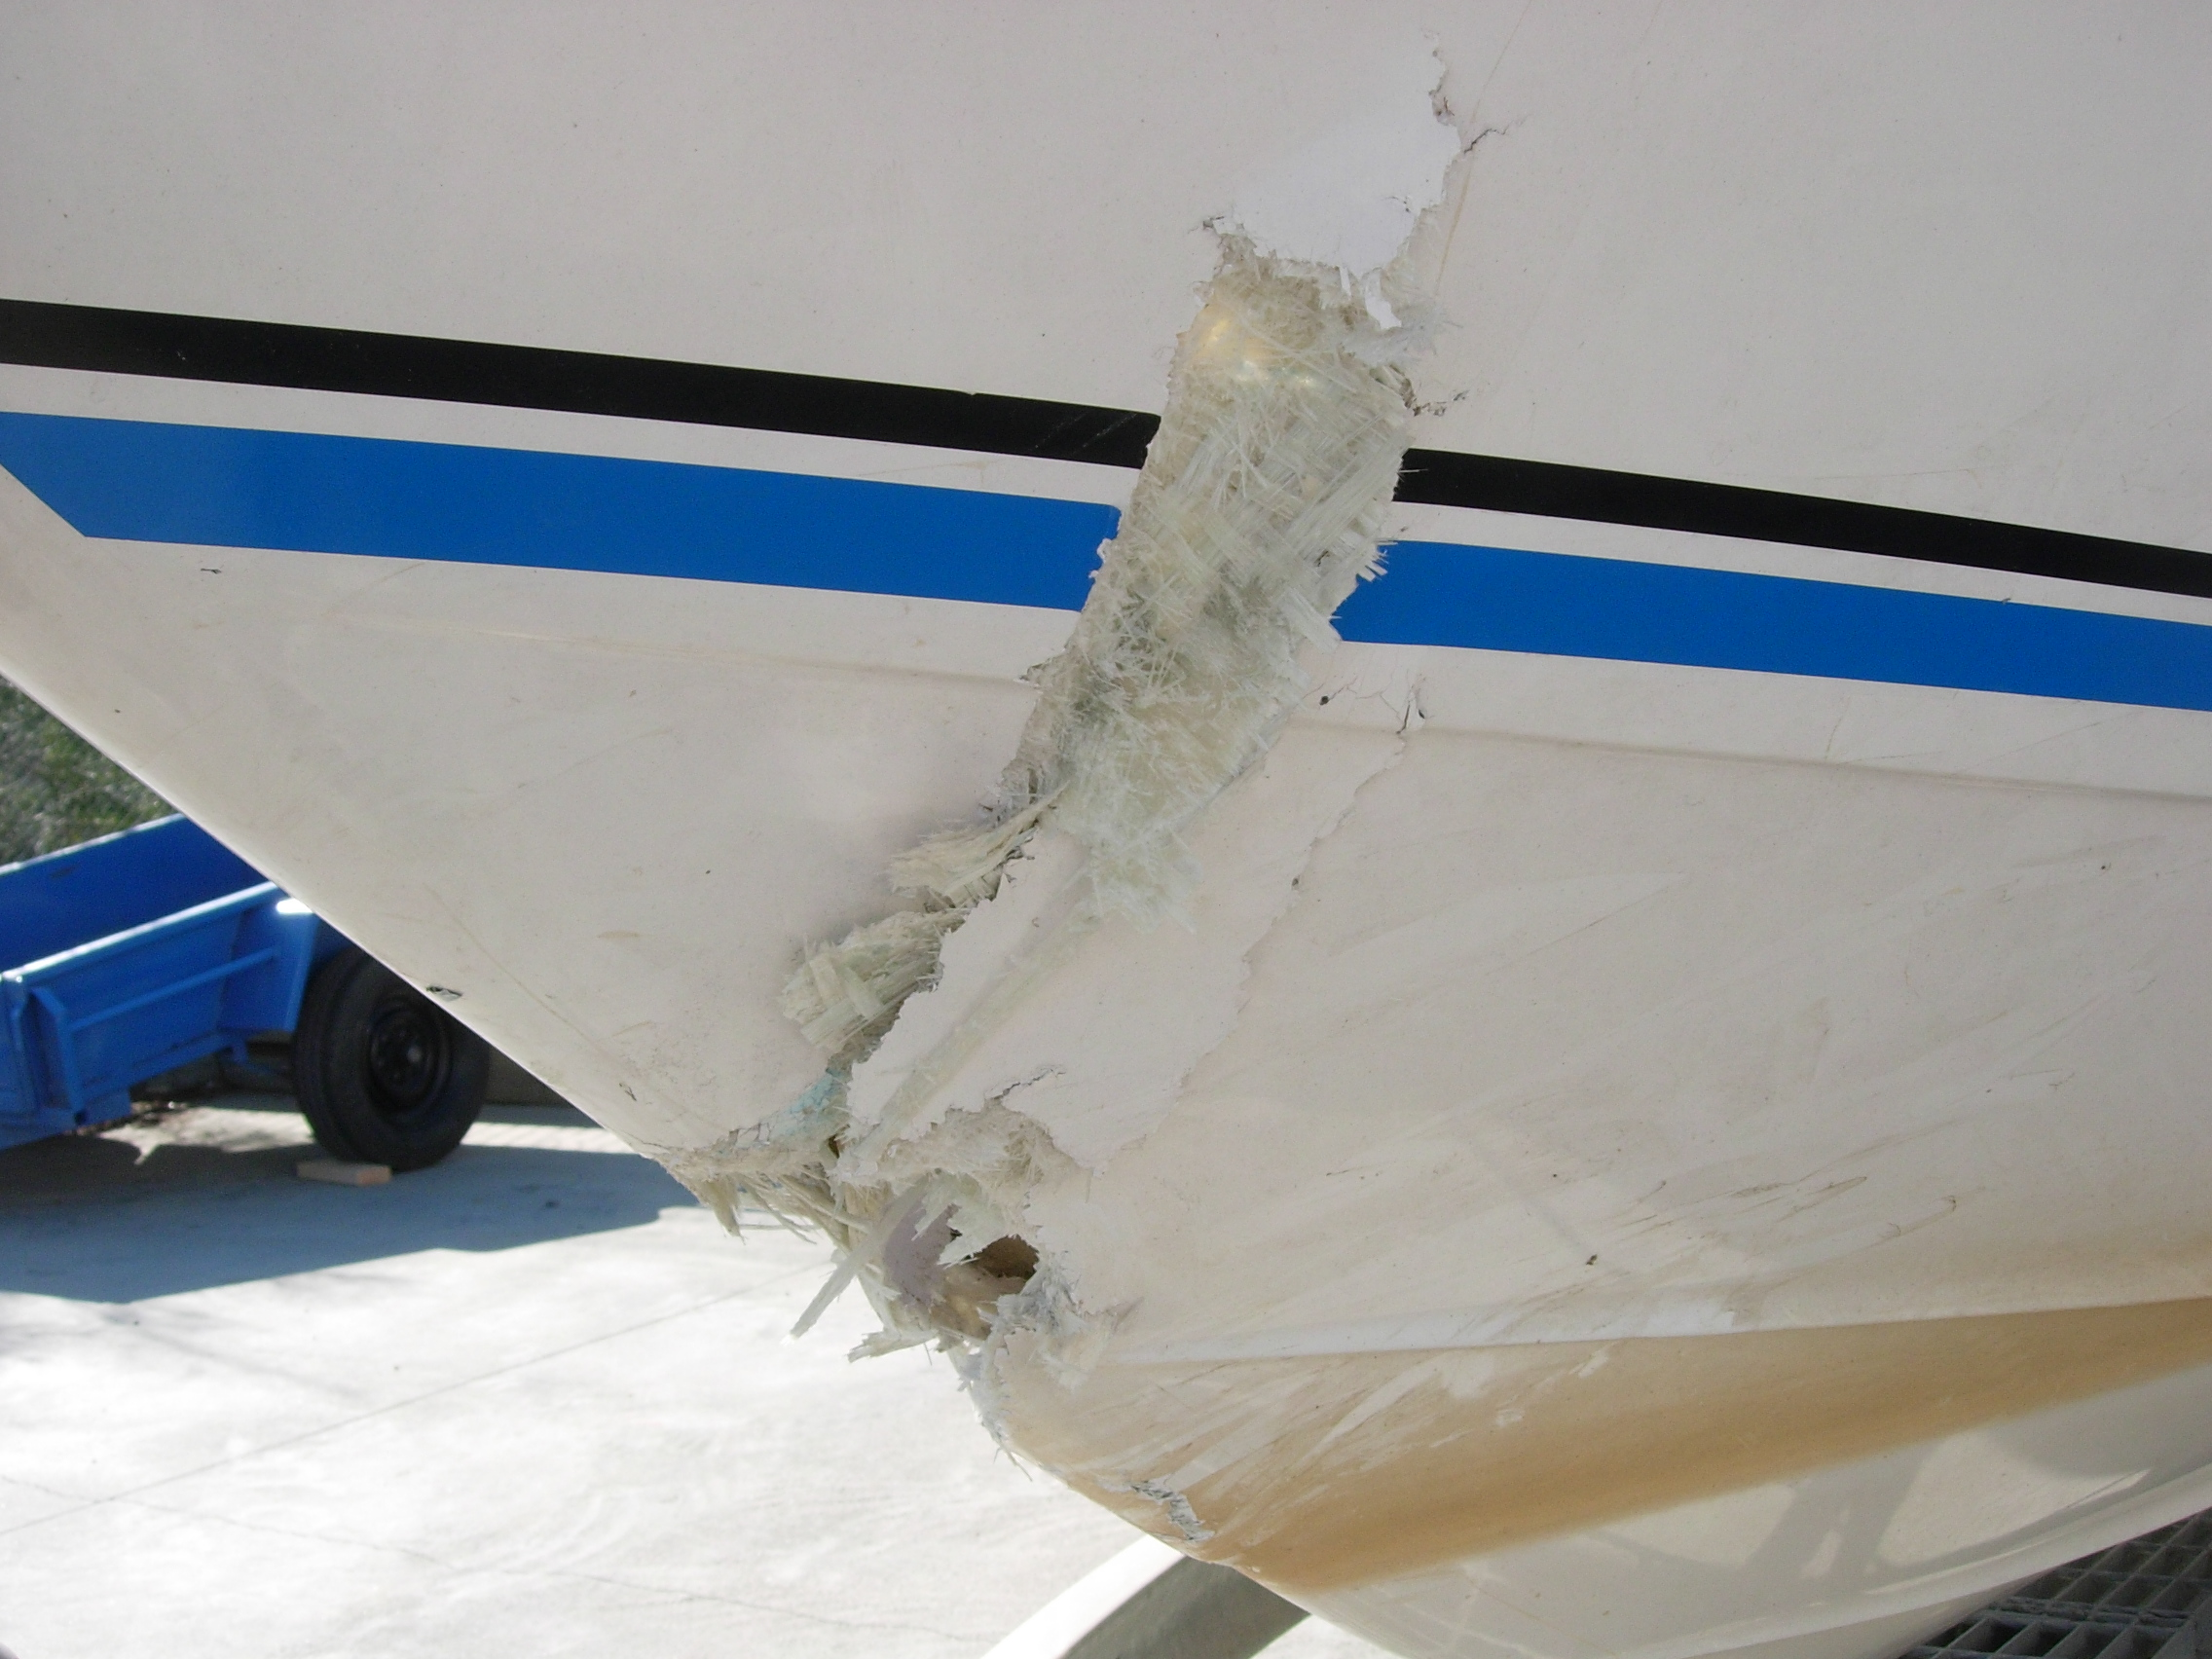 Structural boat damage repair